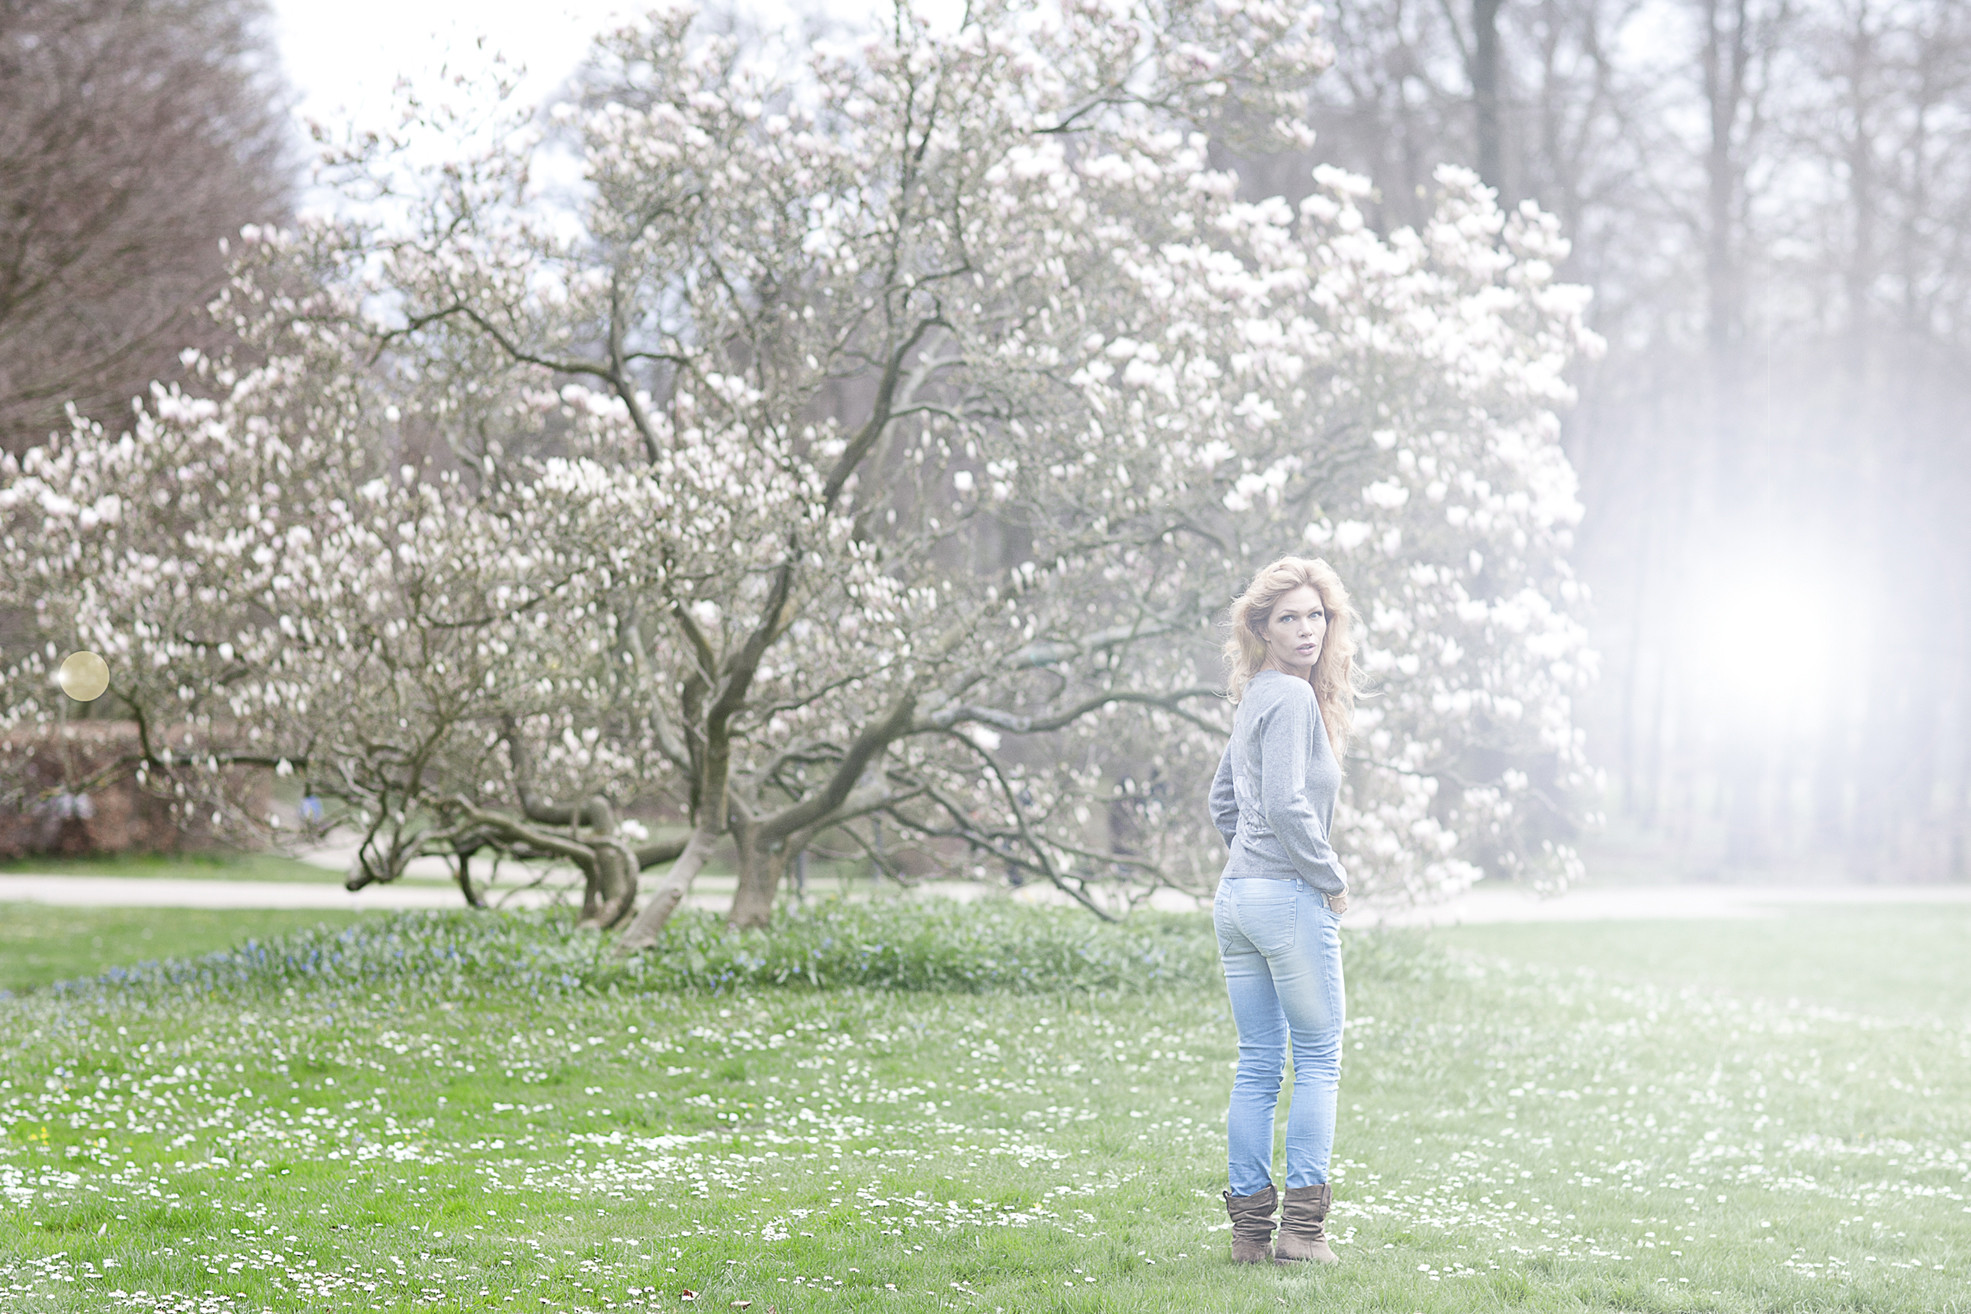 Laura von Lindholm model for Magnolia by Cathrine Oxholm Sonne